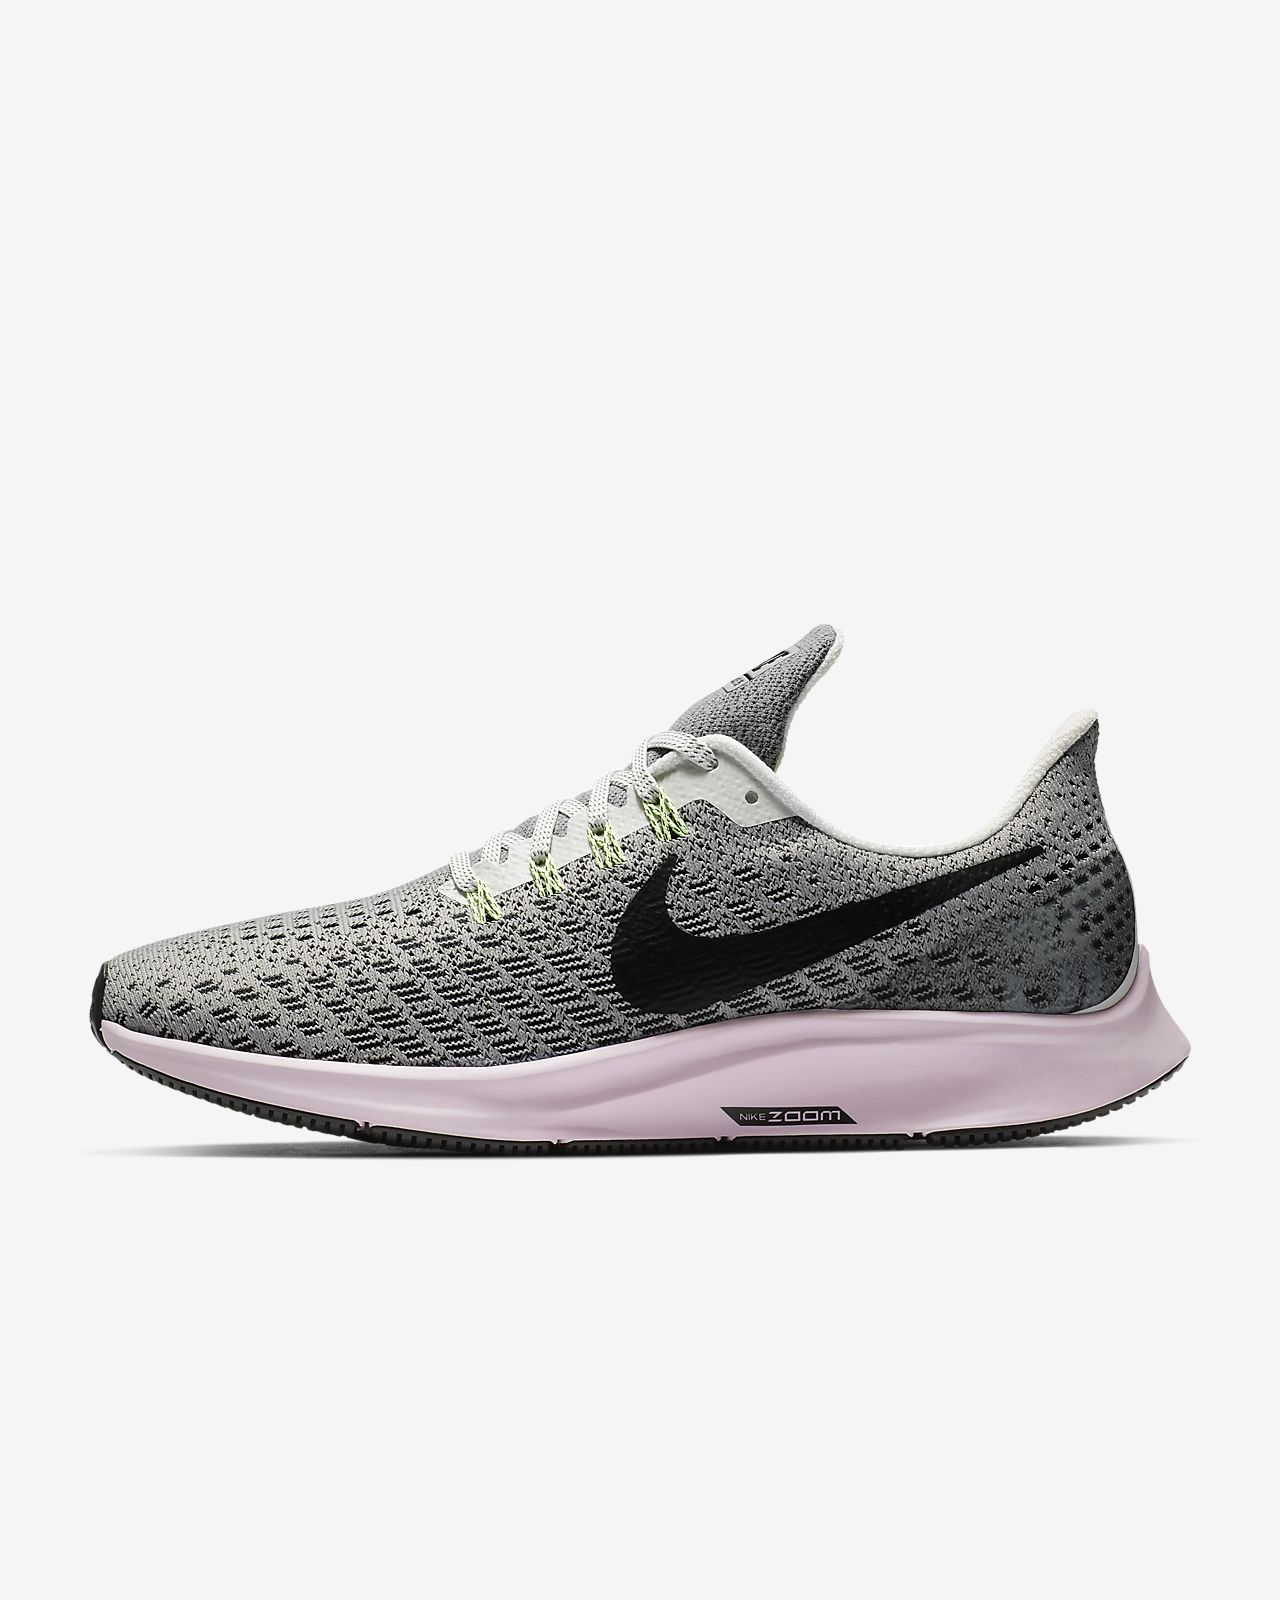 863374c4f8c Nike Air Zoom Pegasus 35 Women s Running Shoe. Nike.com GB